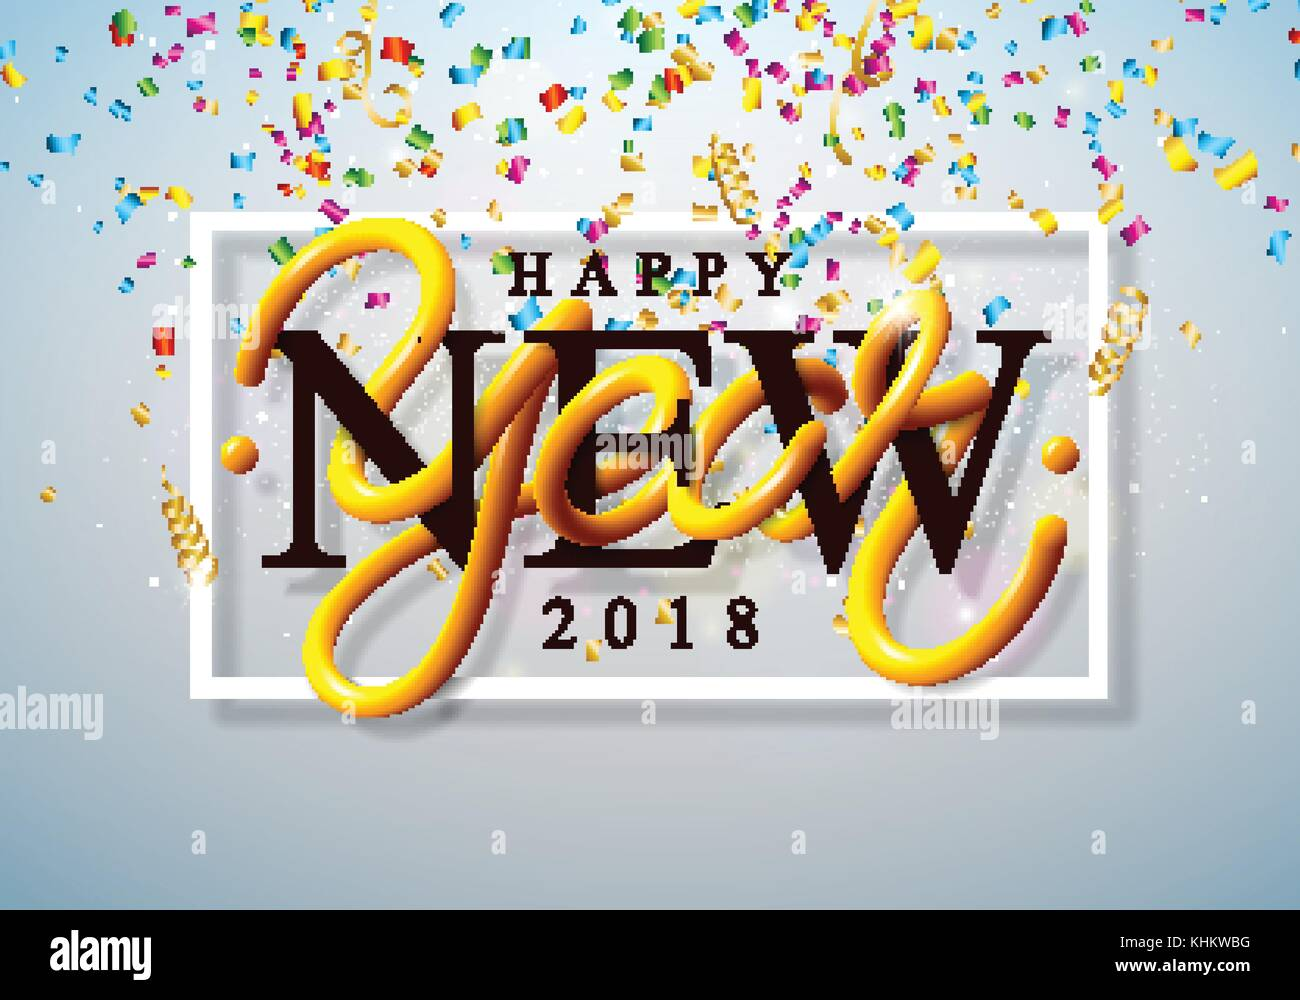 happy new year 2018 illustration with colorful confetti and 3d lettering on shiny light background vector holiday design for premium greeting card party